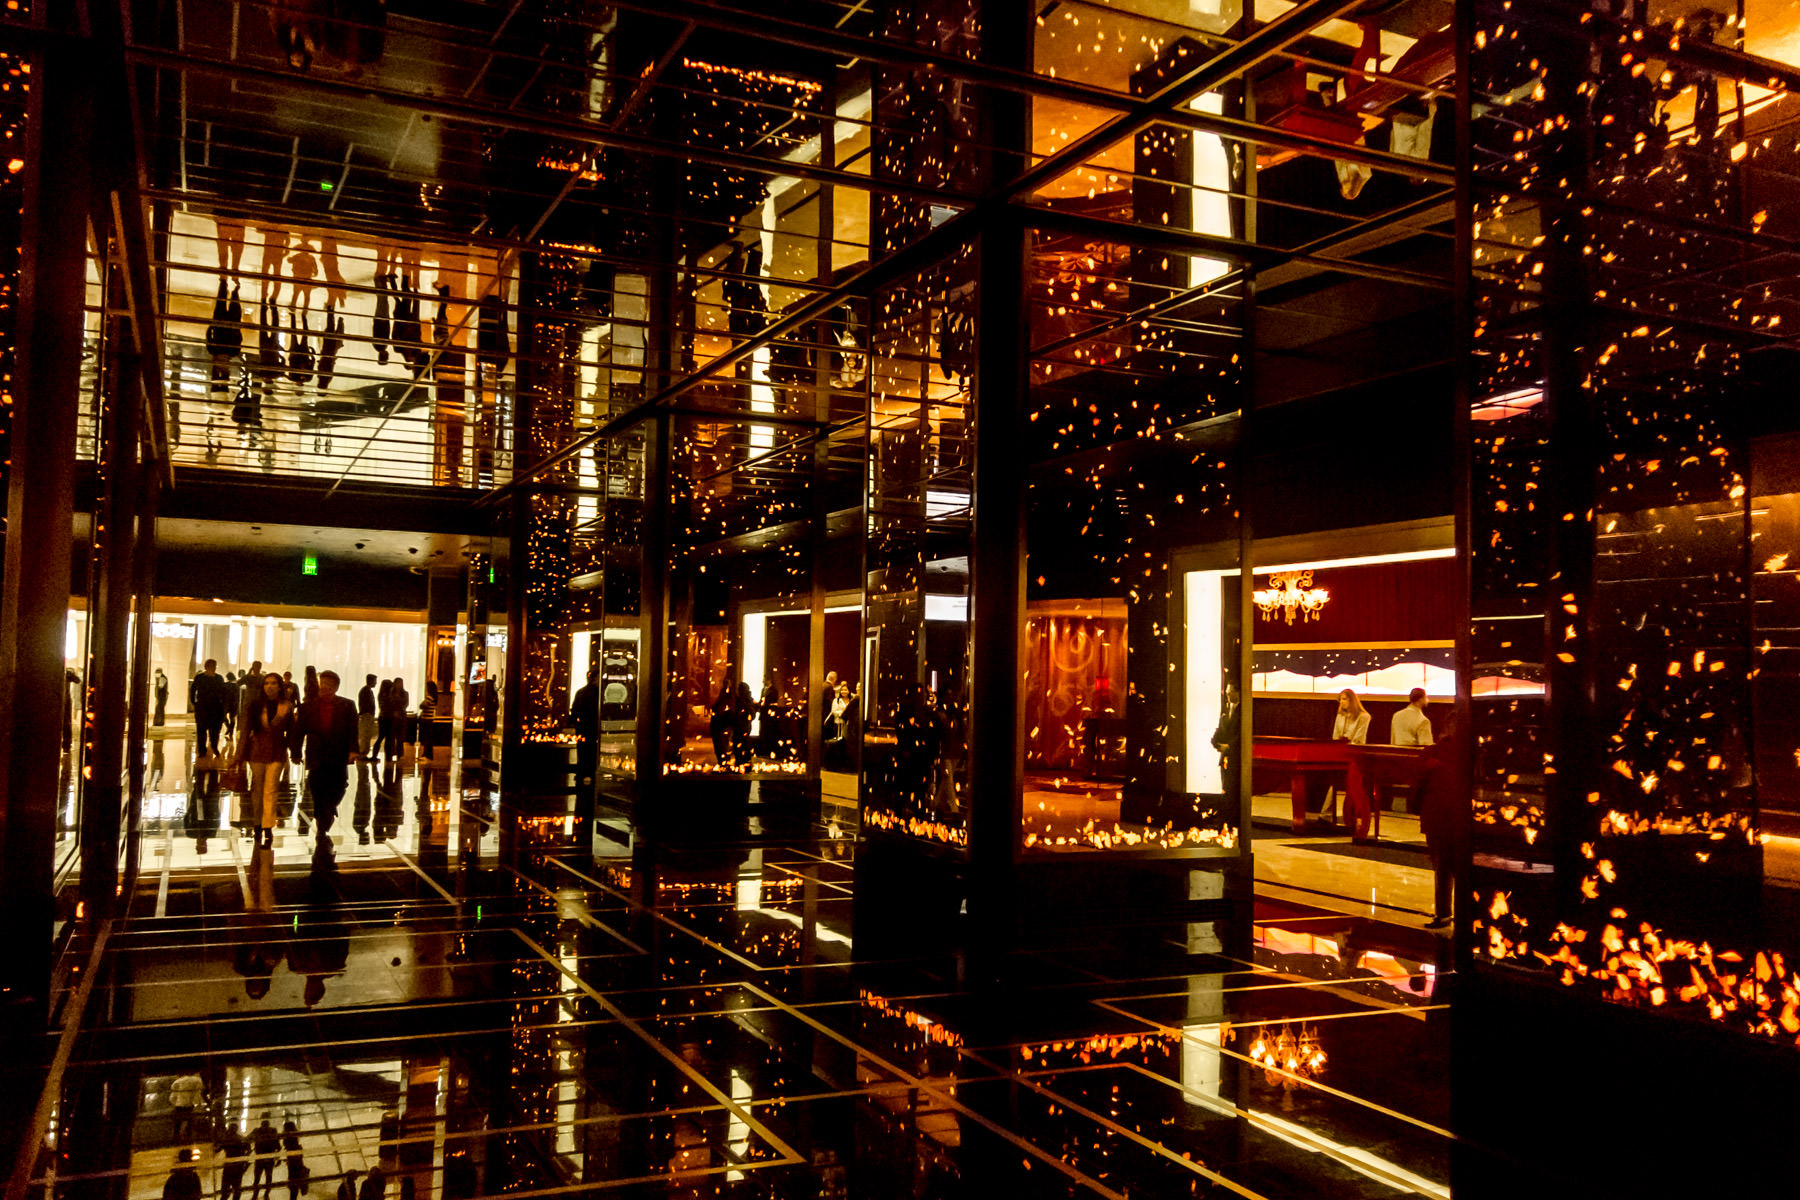 Video screens displaying ambient, dynamic art grace the front desk area of The Cosmopolitan, Las Vegas.